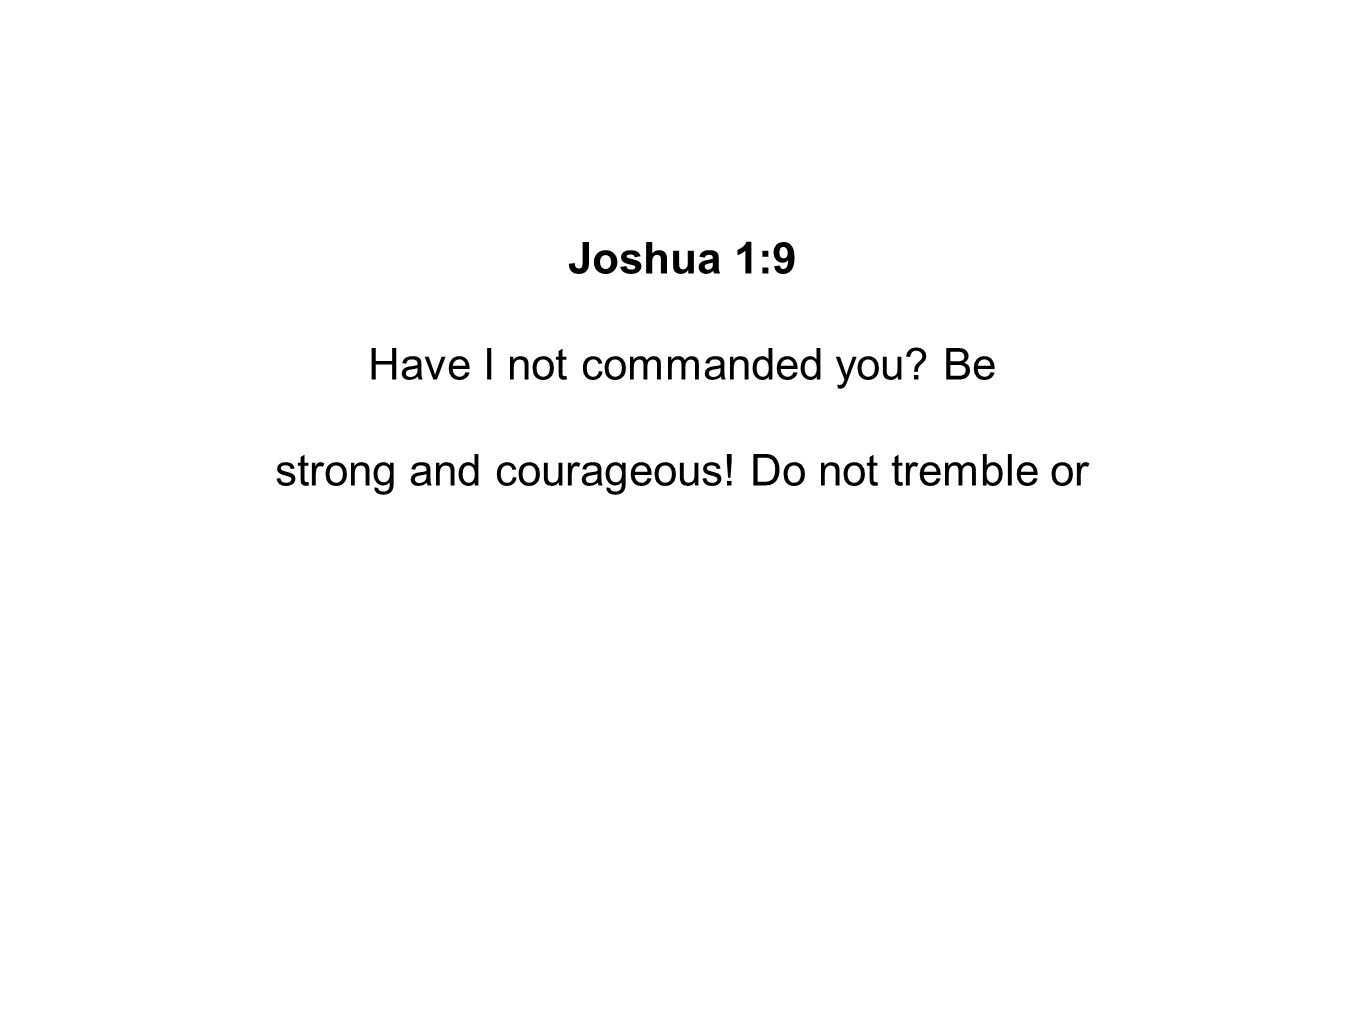 Joshua 1:9 Have I not commanded you Be strong and courageous! Do not tremble or